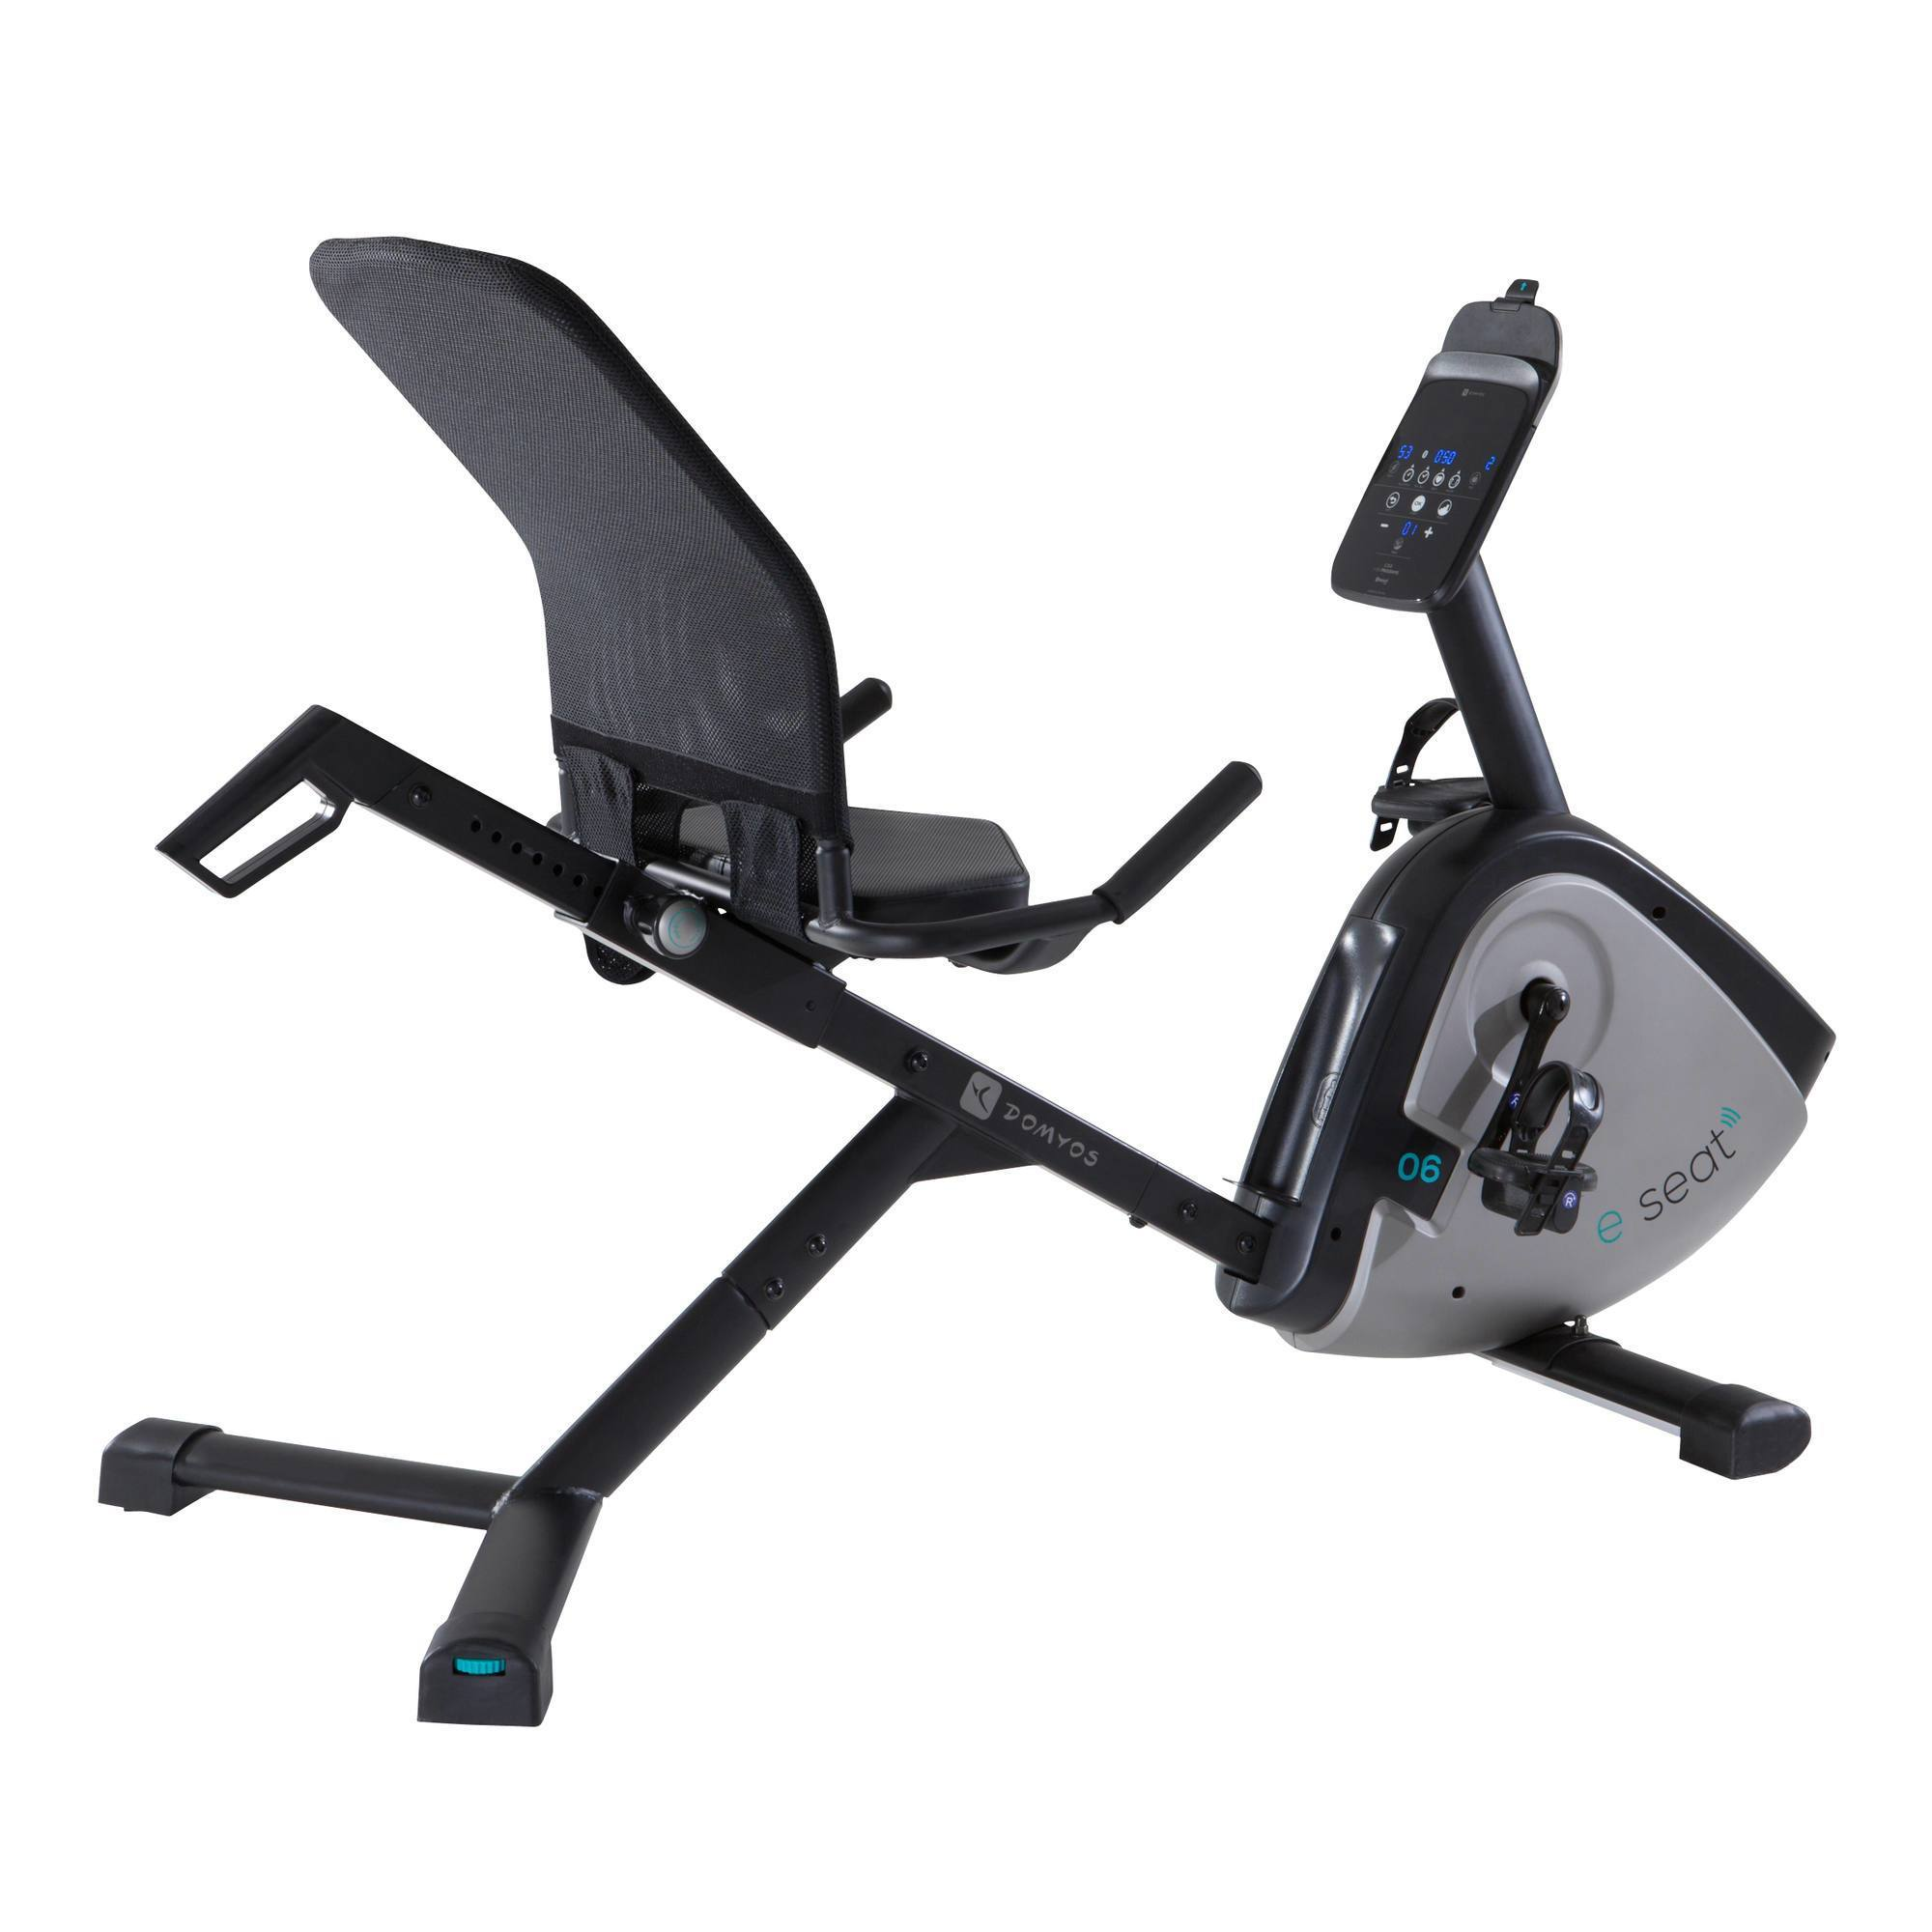 Velo d 39 appartement assis e seat compatible application e connected cl - Velo d appartement assis ...